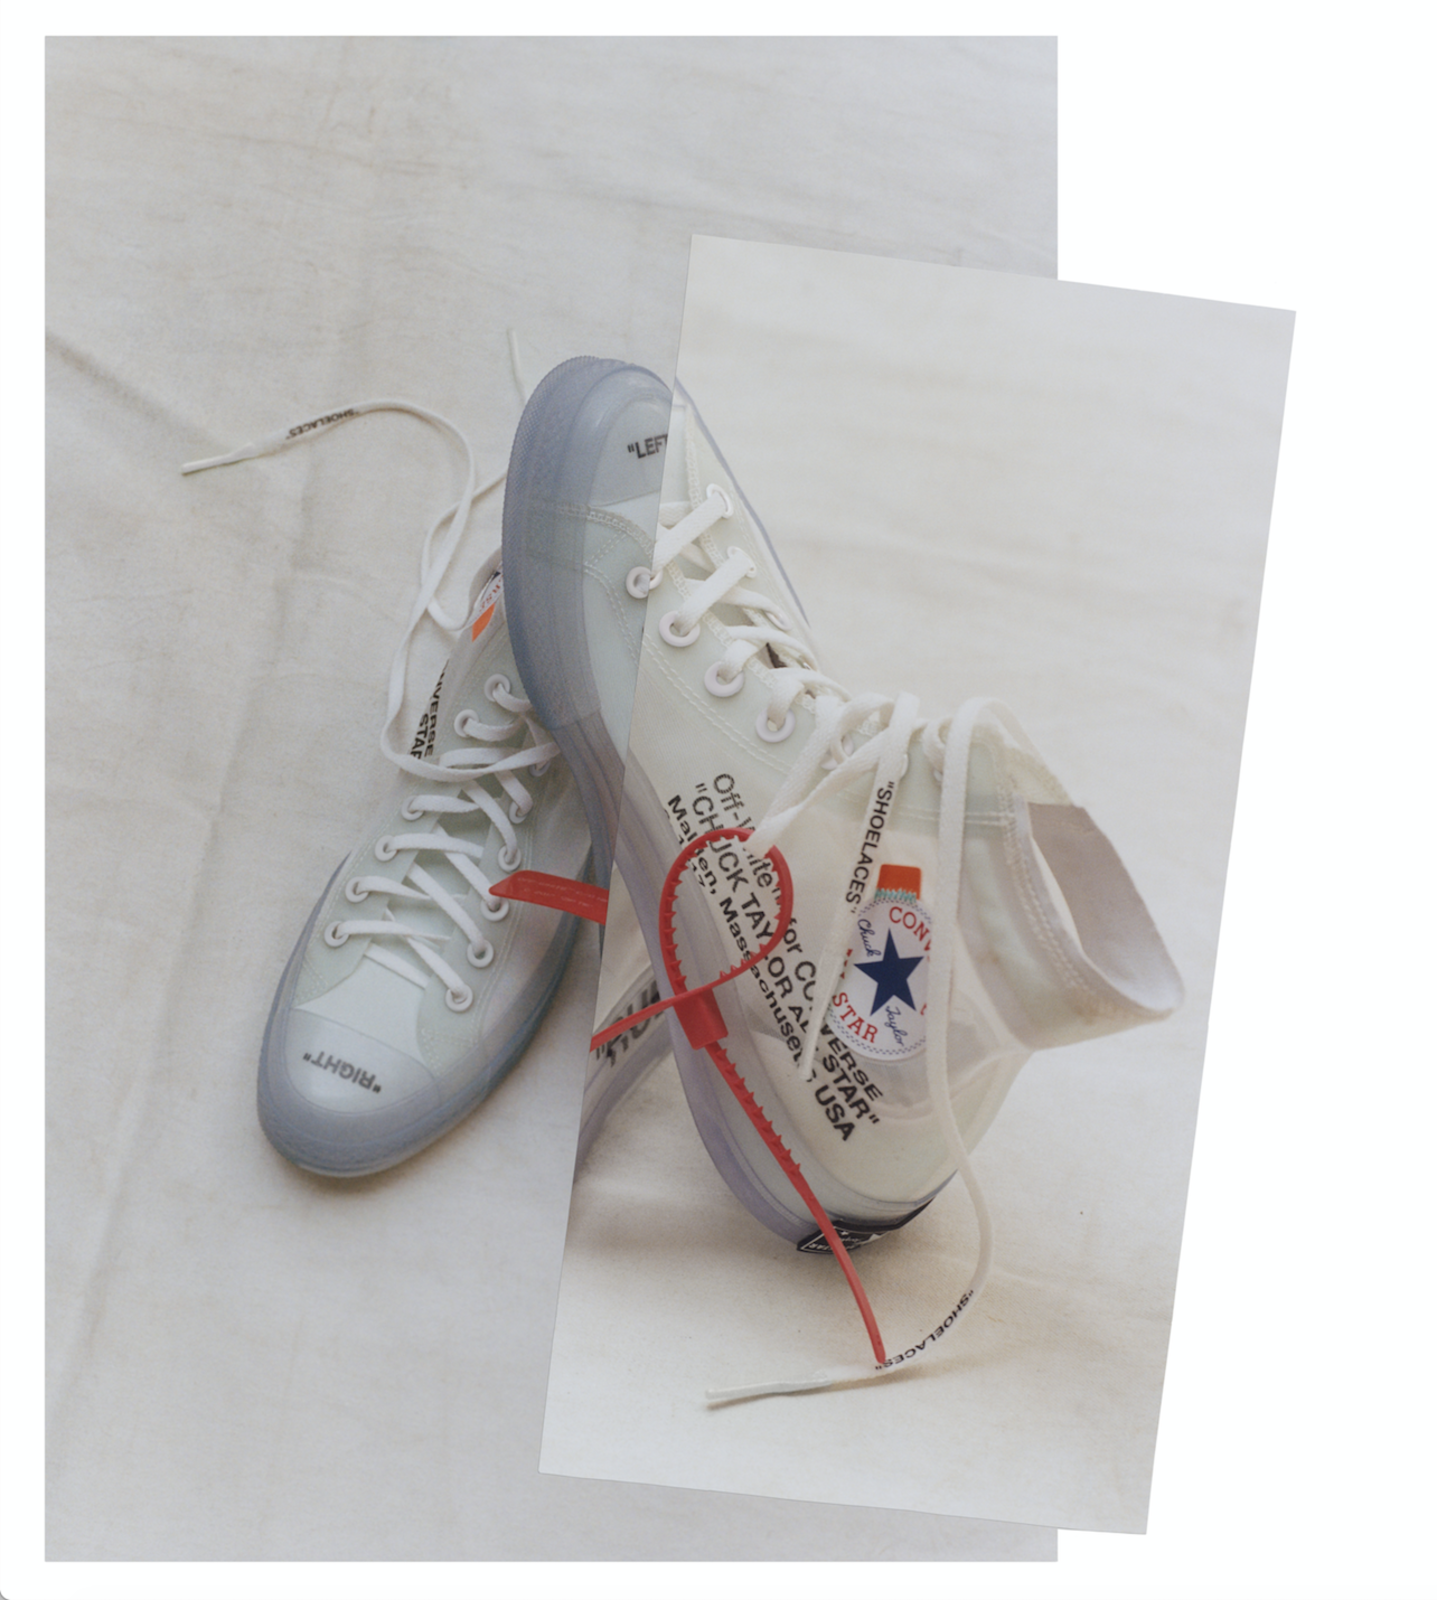 6f6553323c35 How to Get the Converse x Virgil Abloh Chuck 70 - Nike News